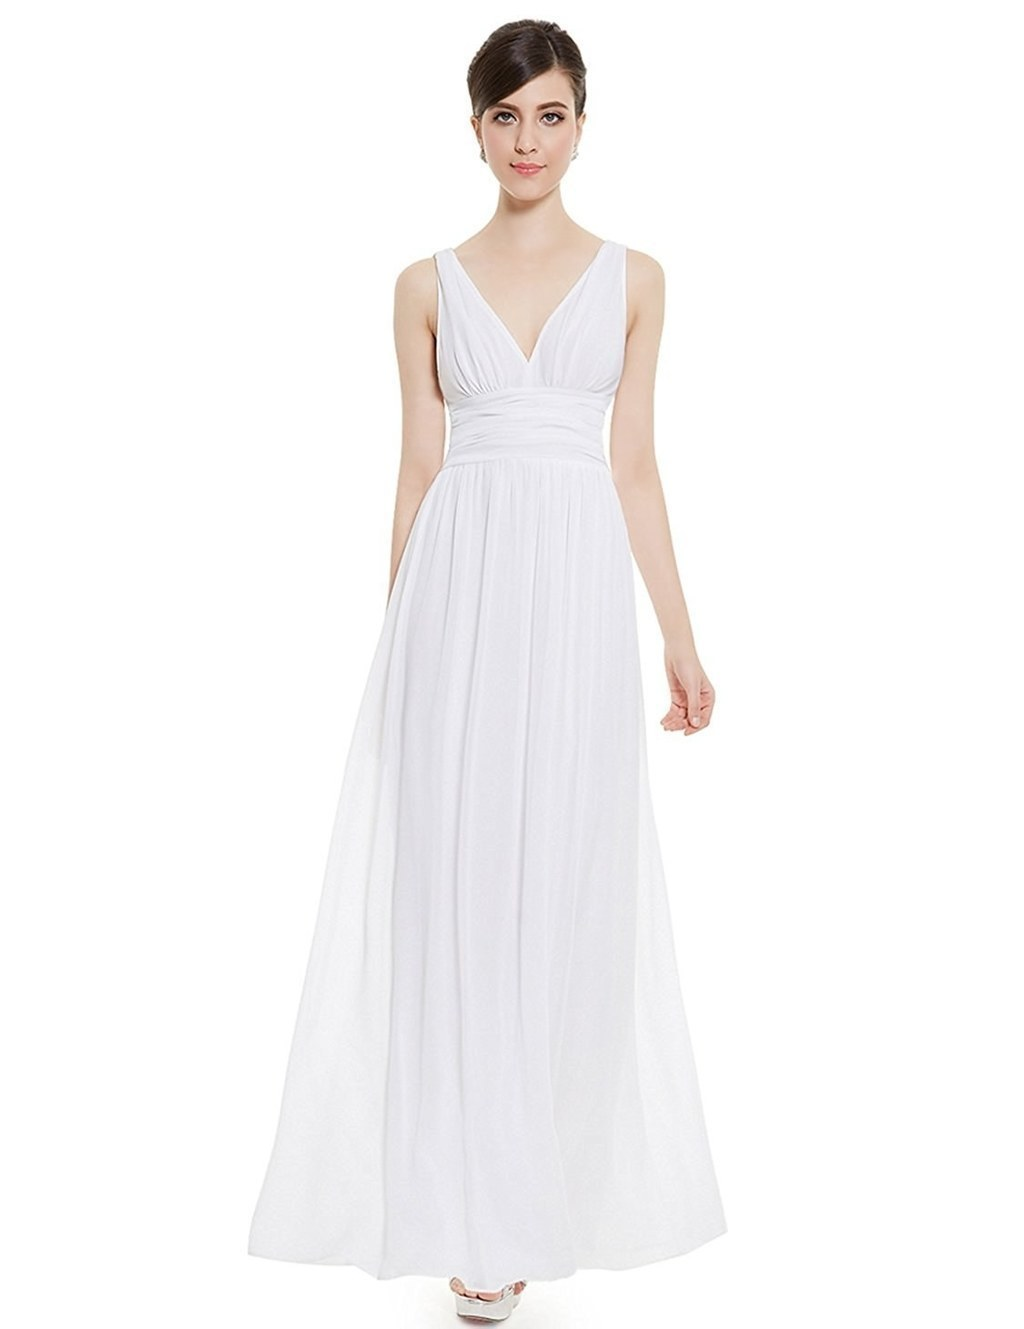 Engaging A Casual Maxi Dress That Is Save Date Invitations Andengagement Photo Wedding Dresses You Believe You Can Get On Amazon Amazon Wedding Dresses Cheap Amazon Wedding Dresses Without Bows wedding dress Amazon Wedding Dresses